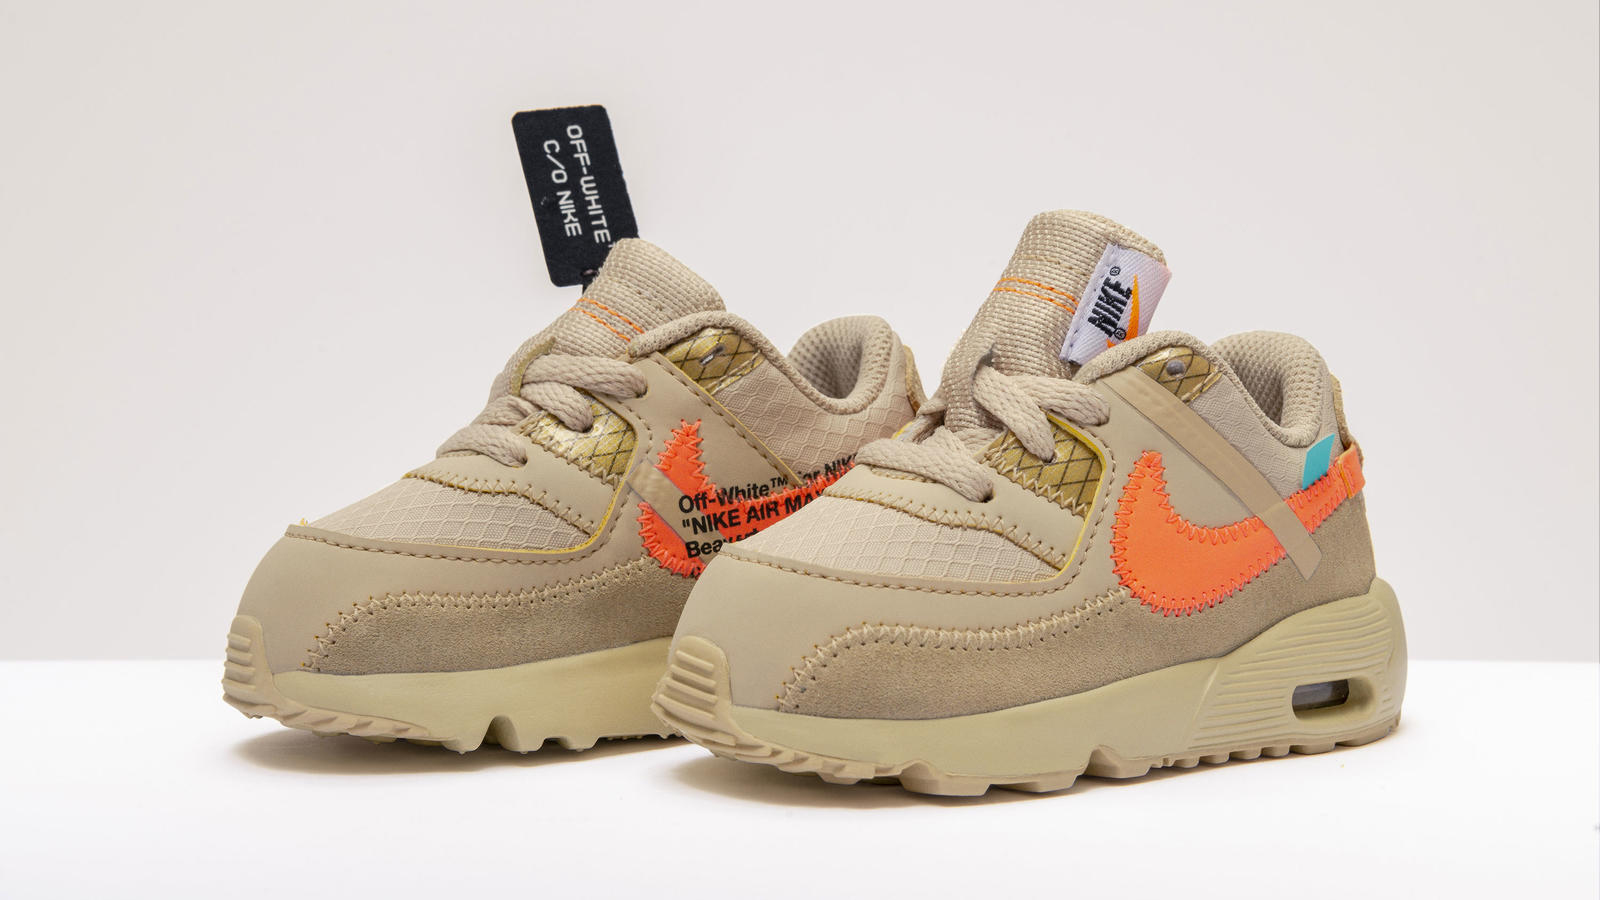 official shop 100% genuine best place OFF-White Nike Air Max 90 Kids Sizes - Nike News